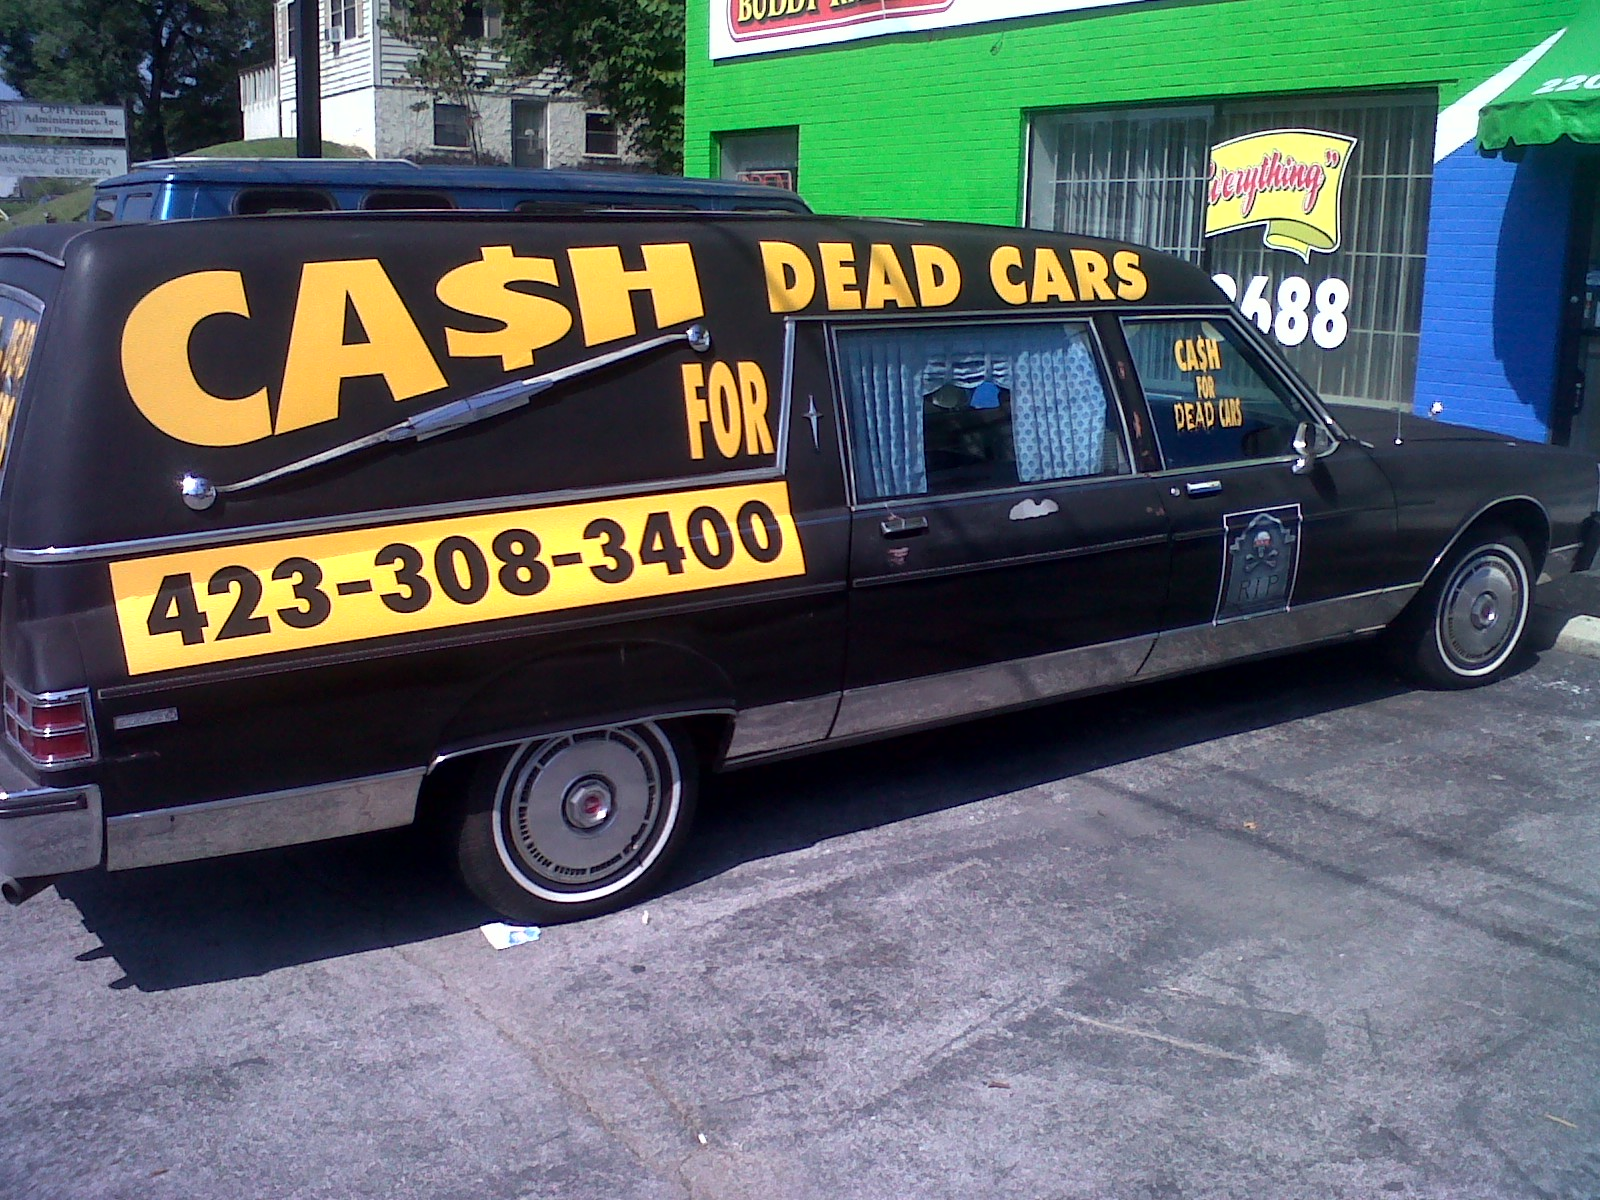 Cash for Junk Cars Chattanooga image 4